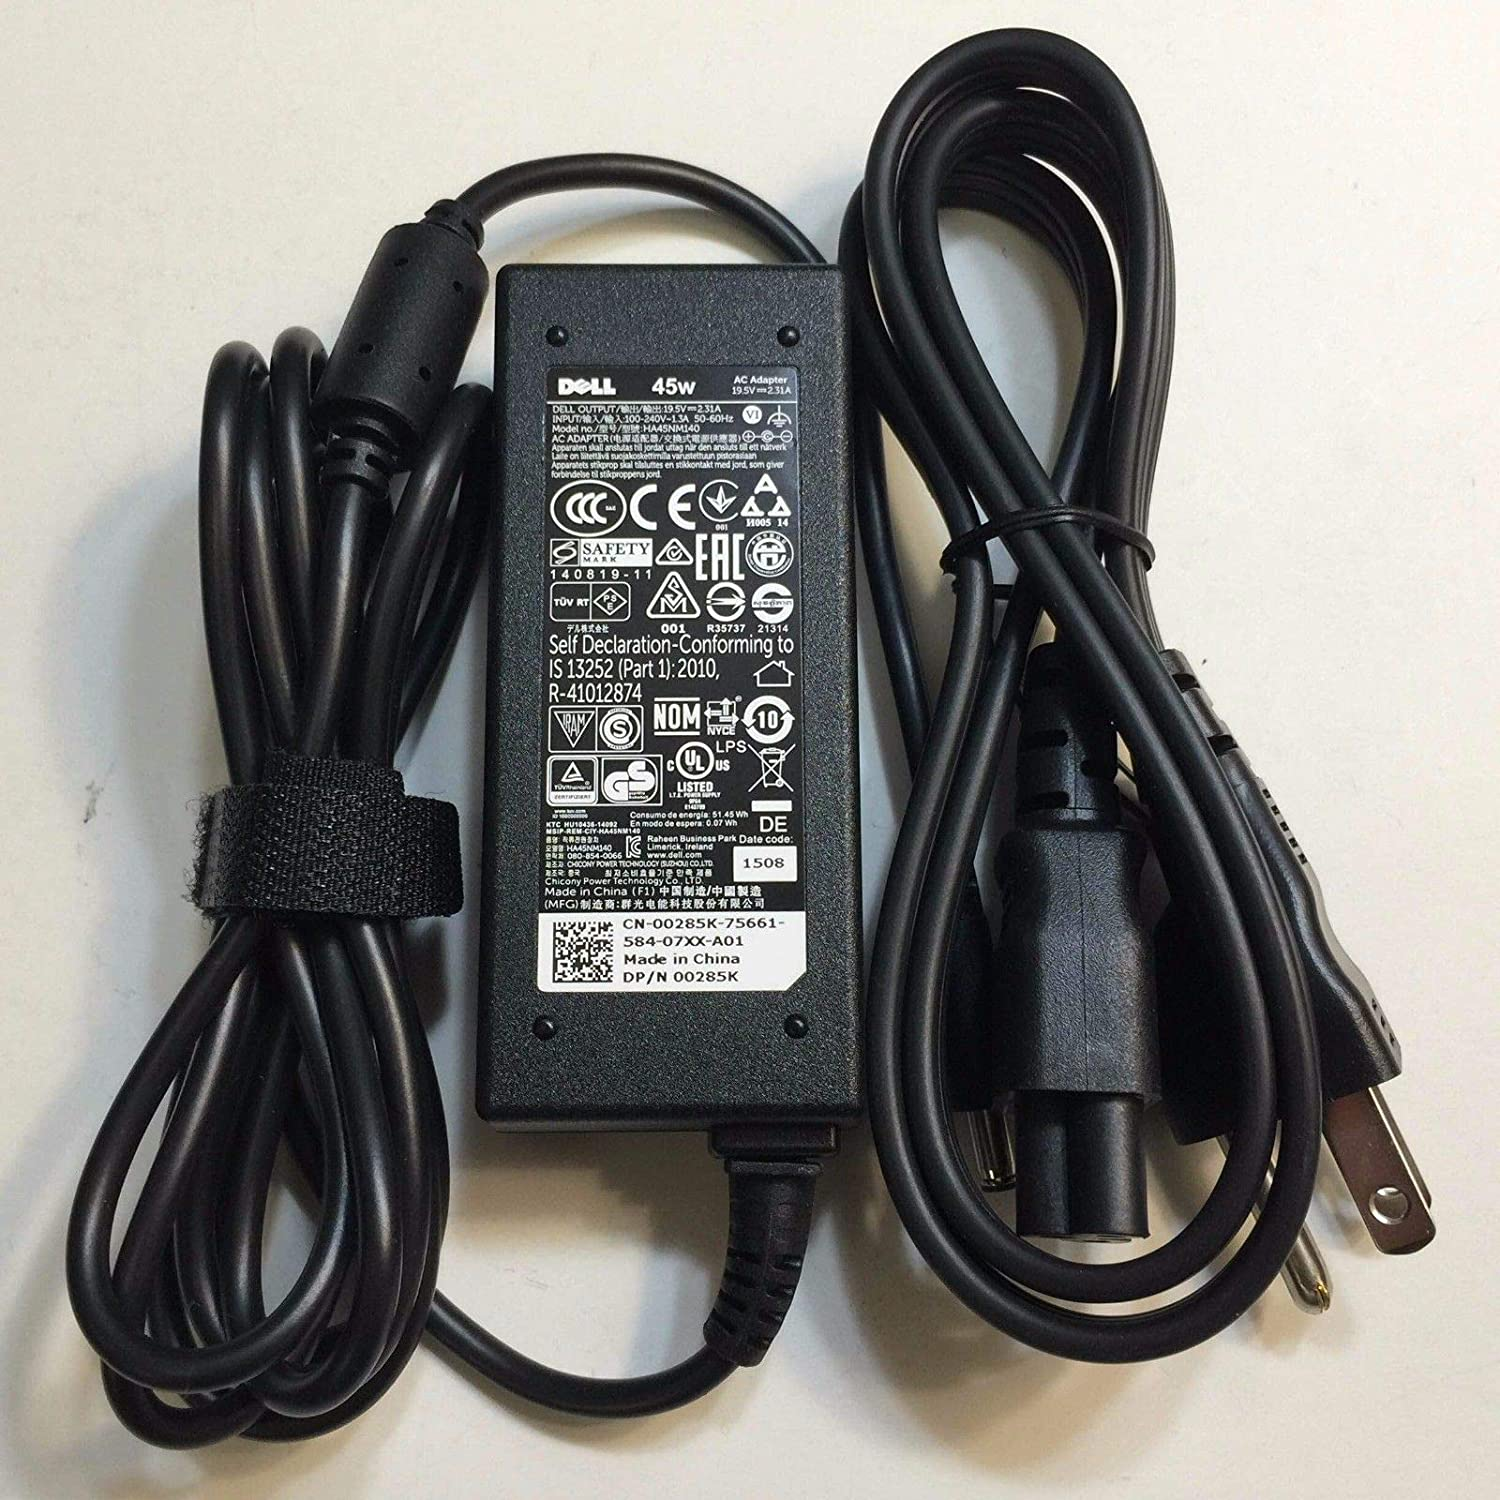 New Genuine AC for Dell 45 Watt AC Adapter with Power Cord 00285K 0285K